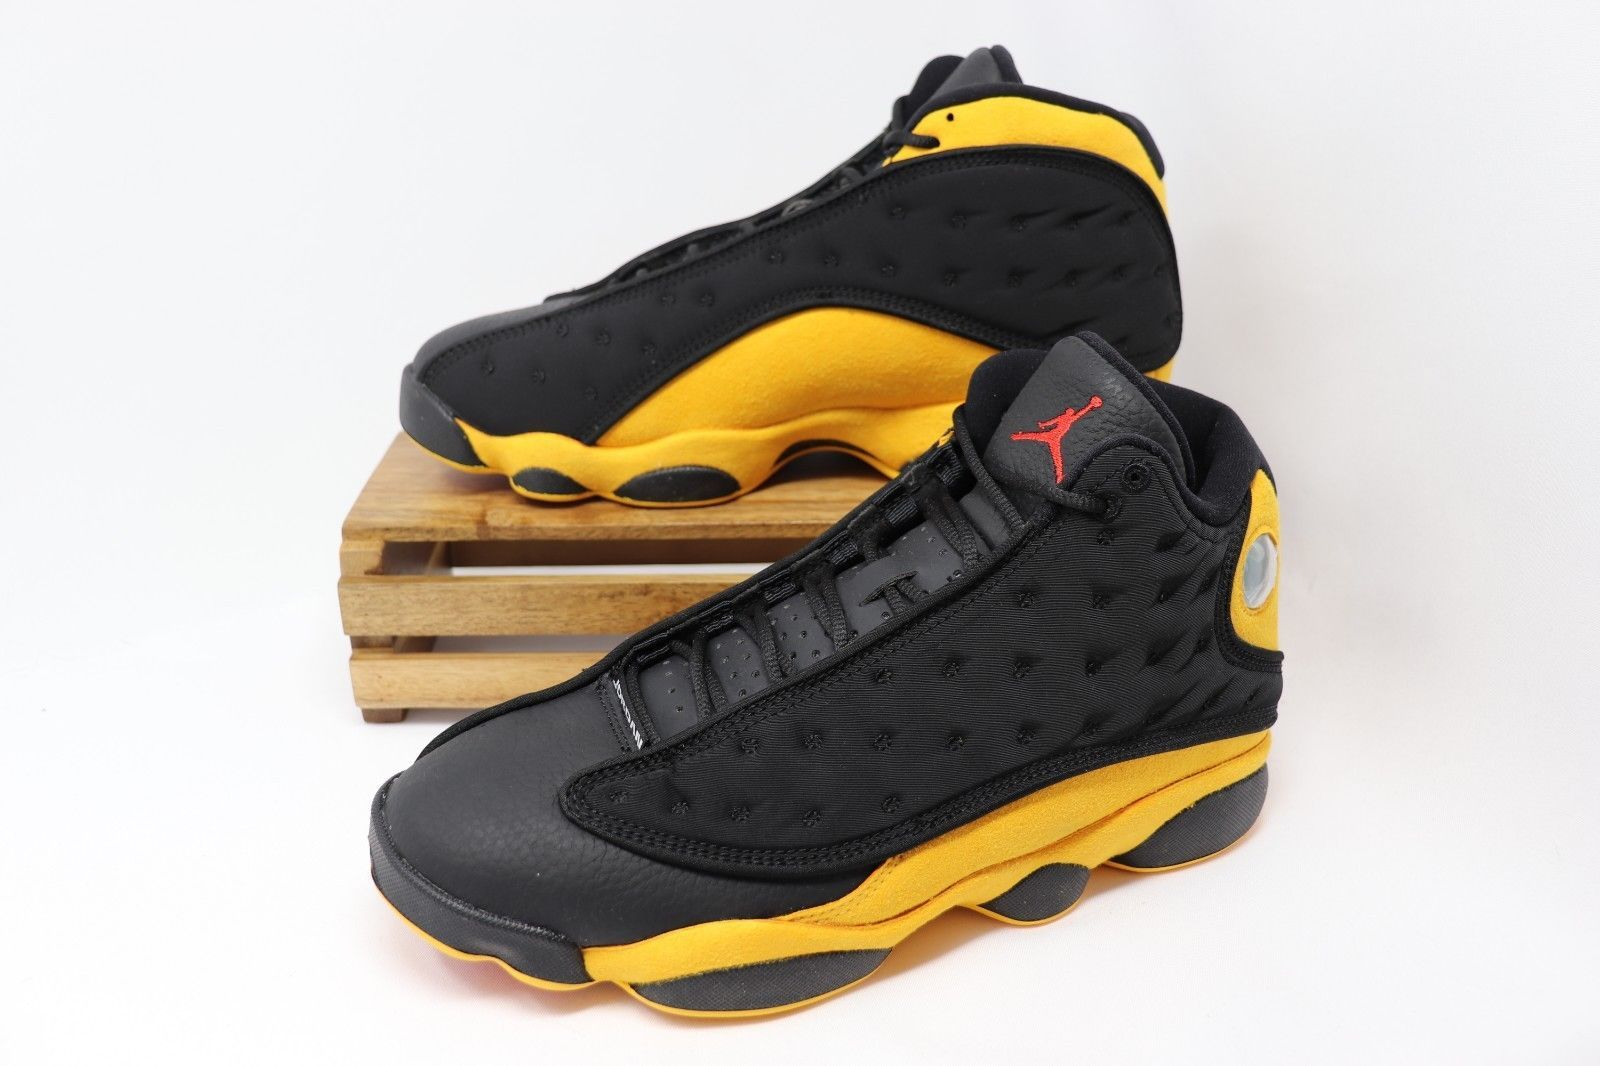 the best attitude af7c0 262f1 Details about Nike Air Jordan 13 XIII Retro Melo Black ...